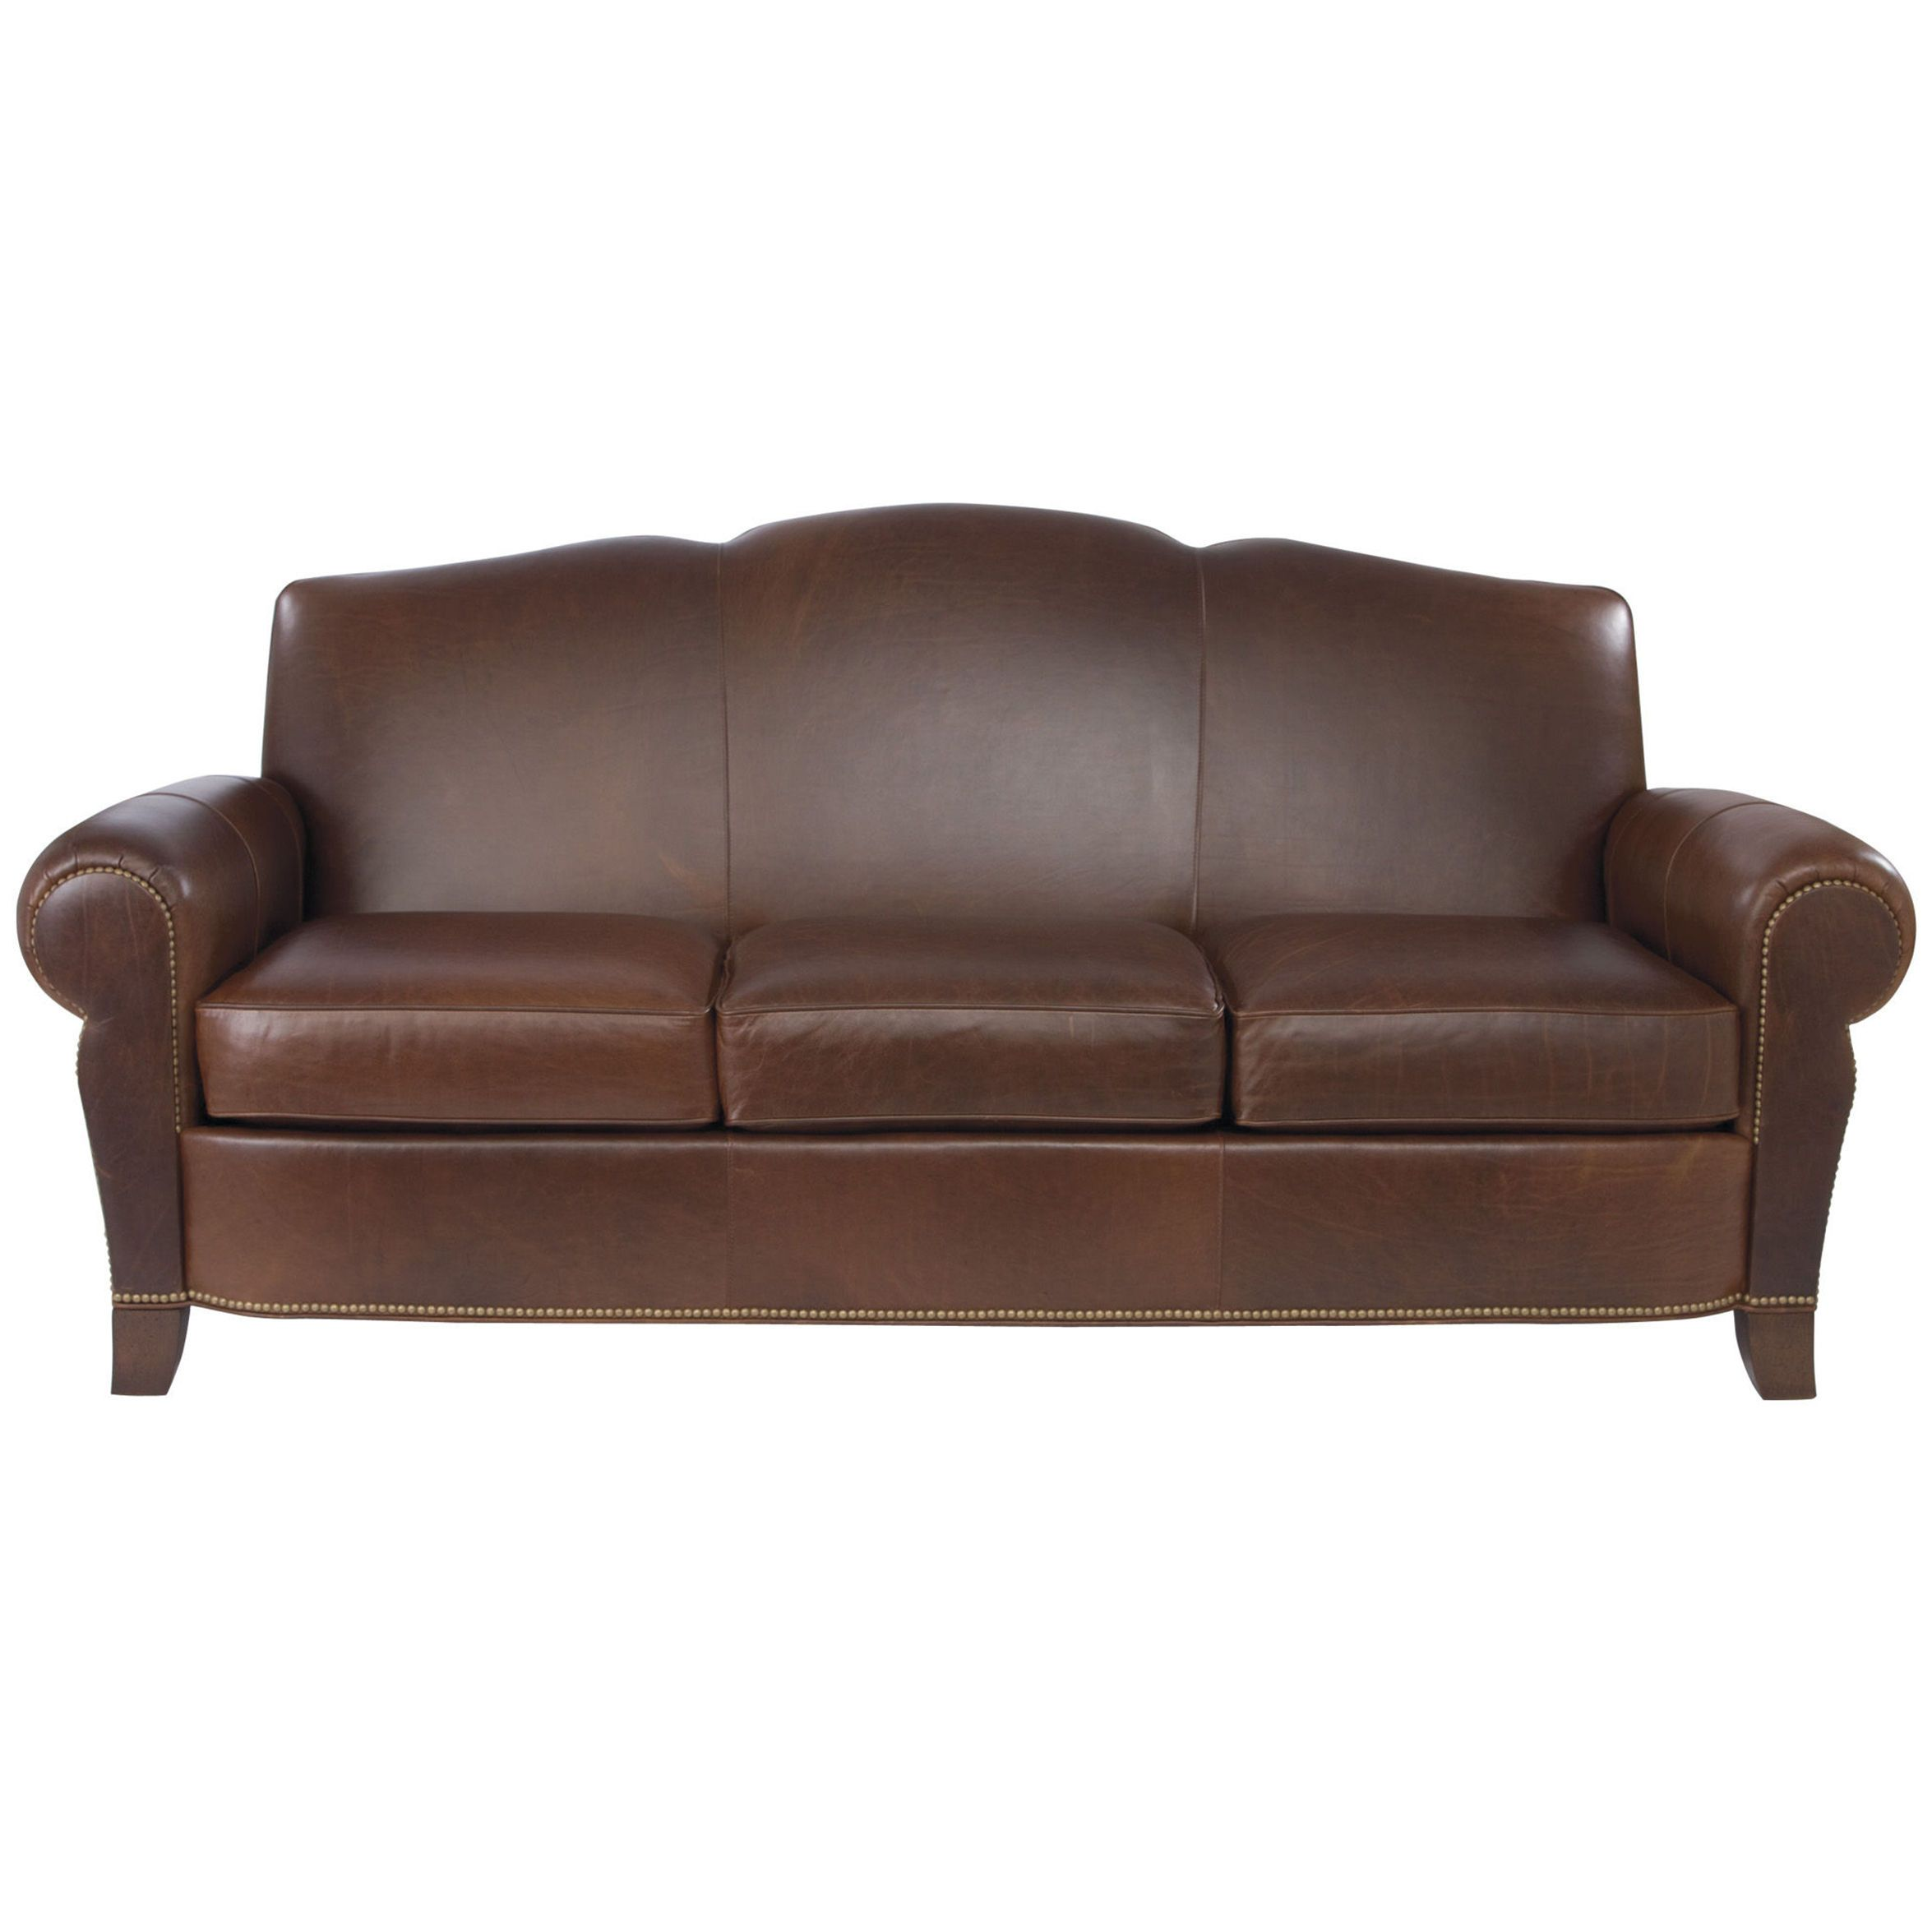 Recliner Sofa Ethan Allen Paloma Three Cushion Leather Sofa Ethan Allen Us Can Be